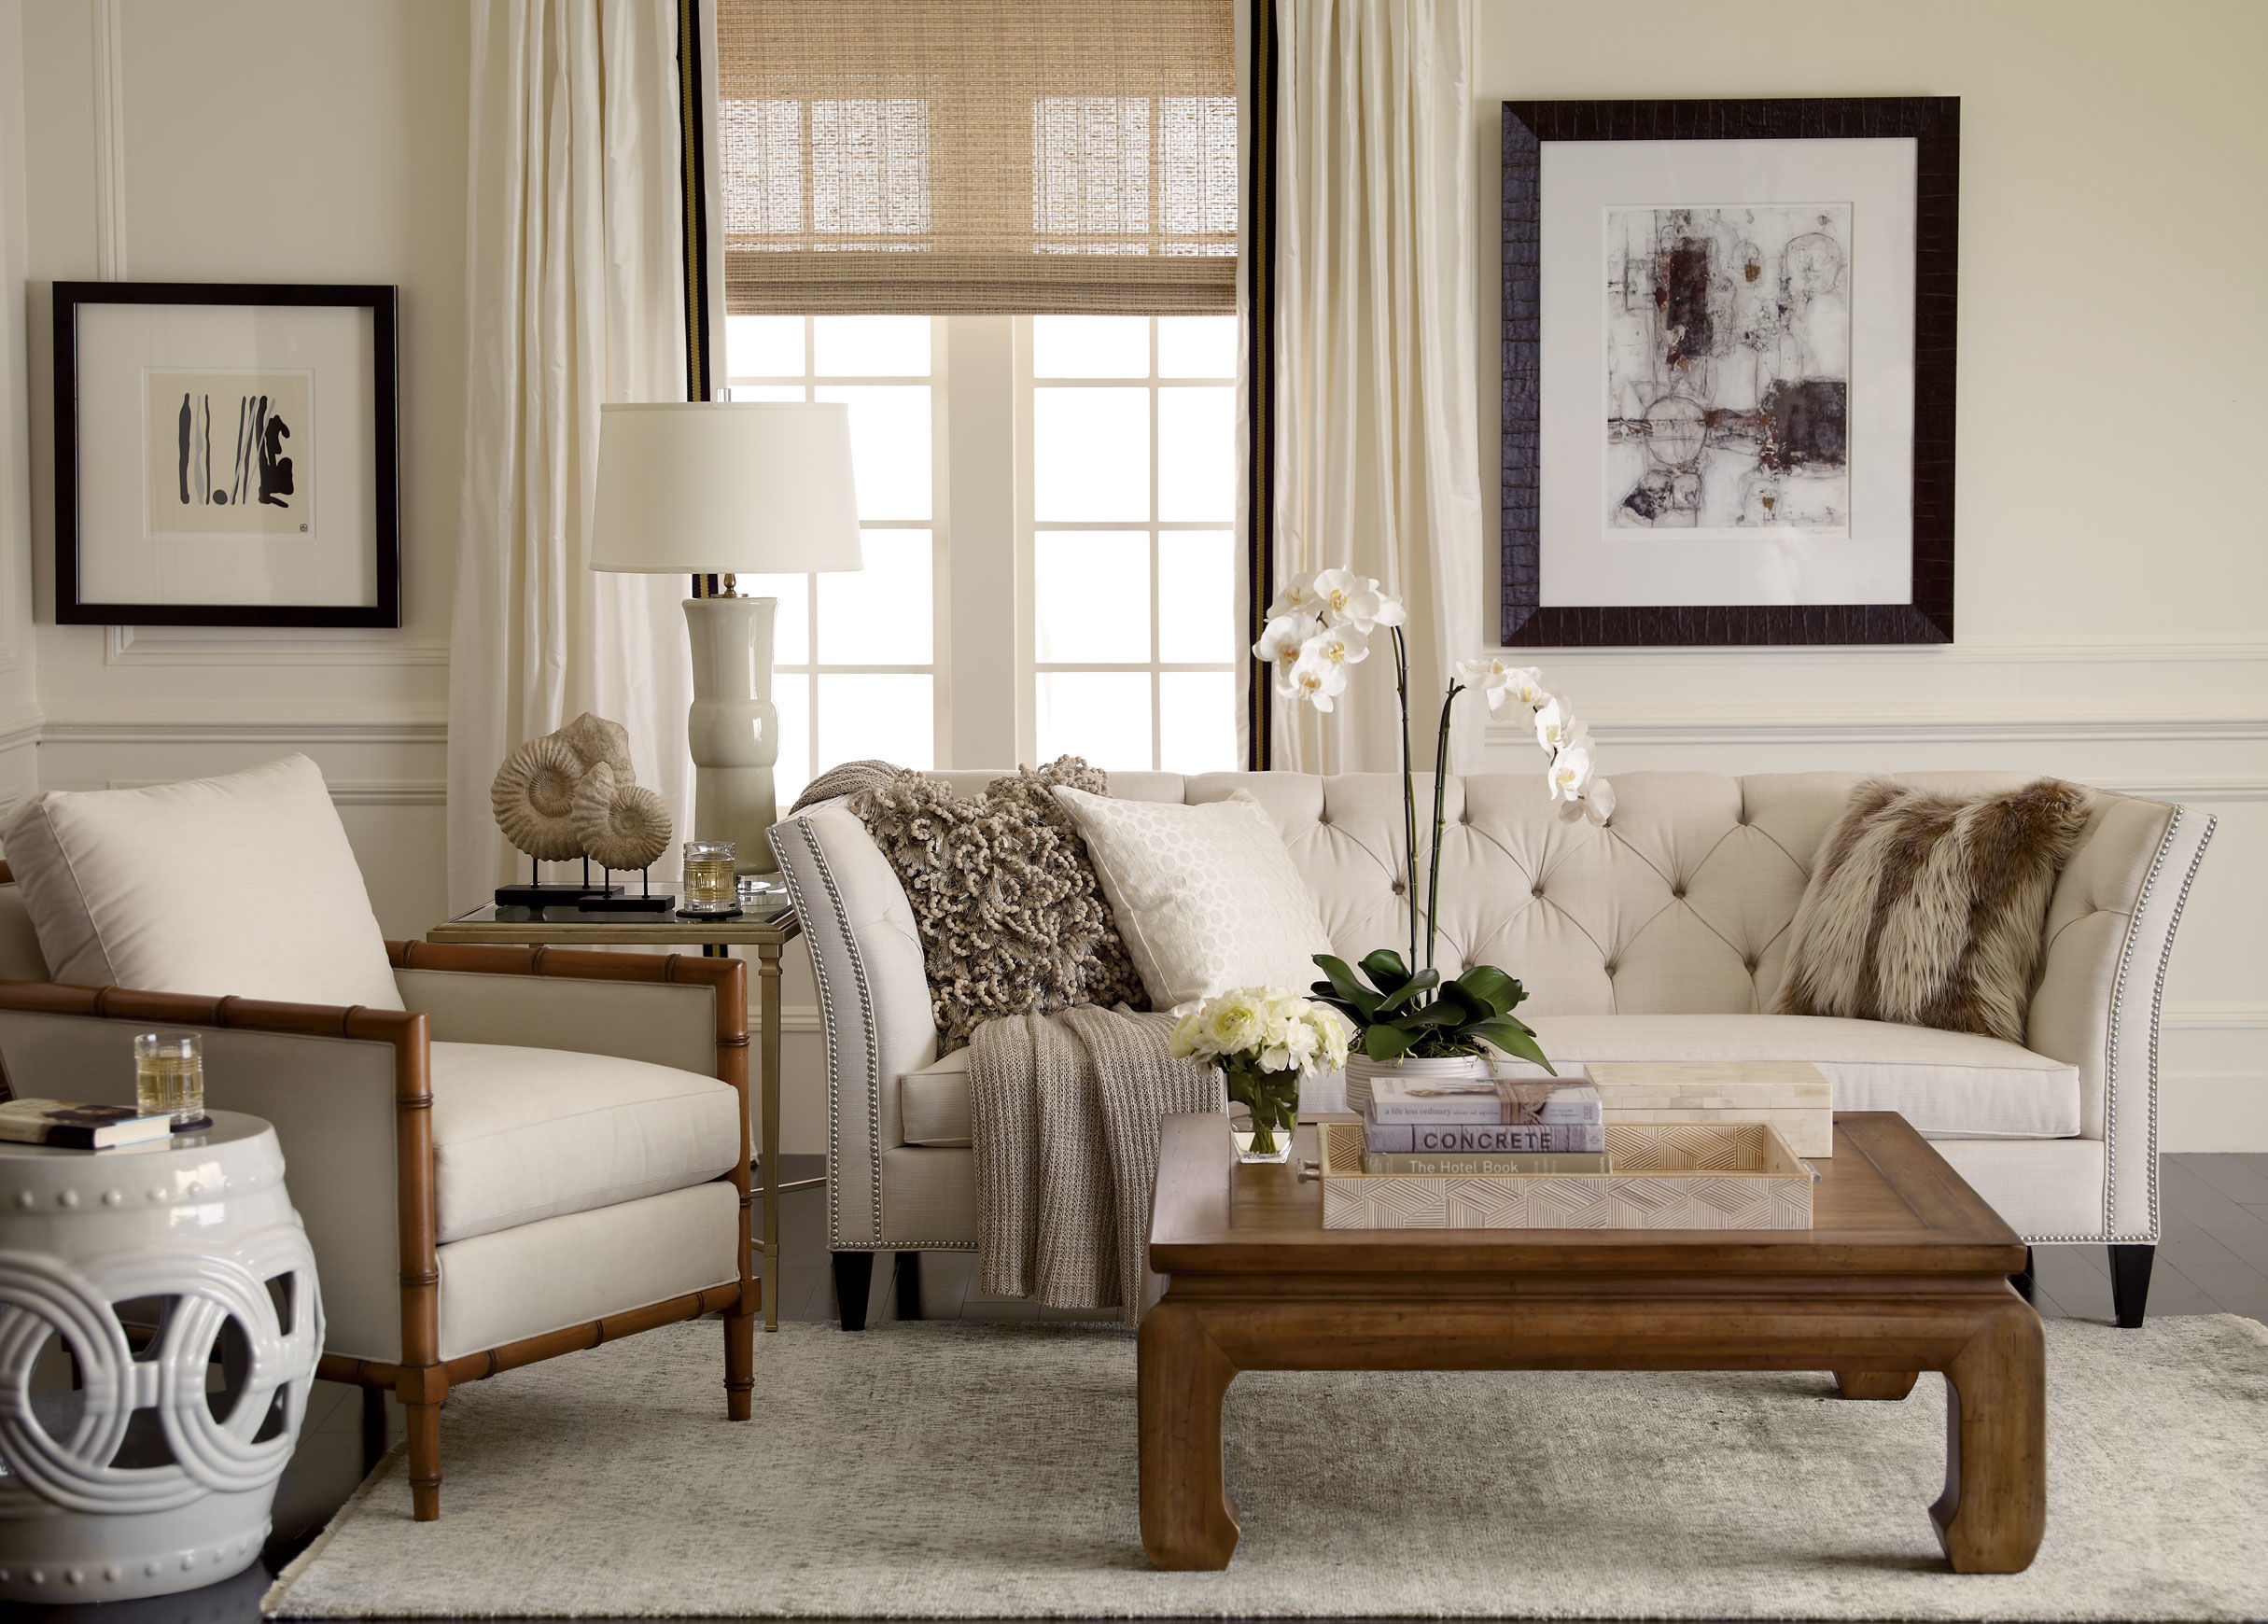 surprising ethan allen living room design ideas pictures remodel decor | Living Room Furniture Ethan Allen